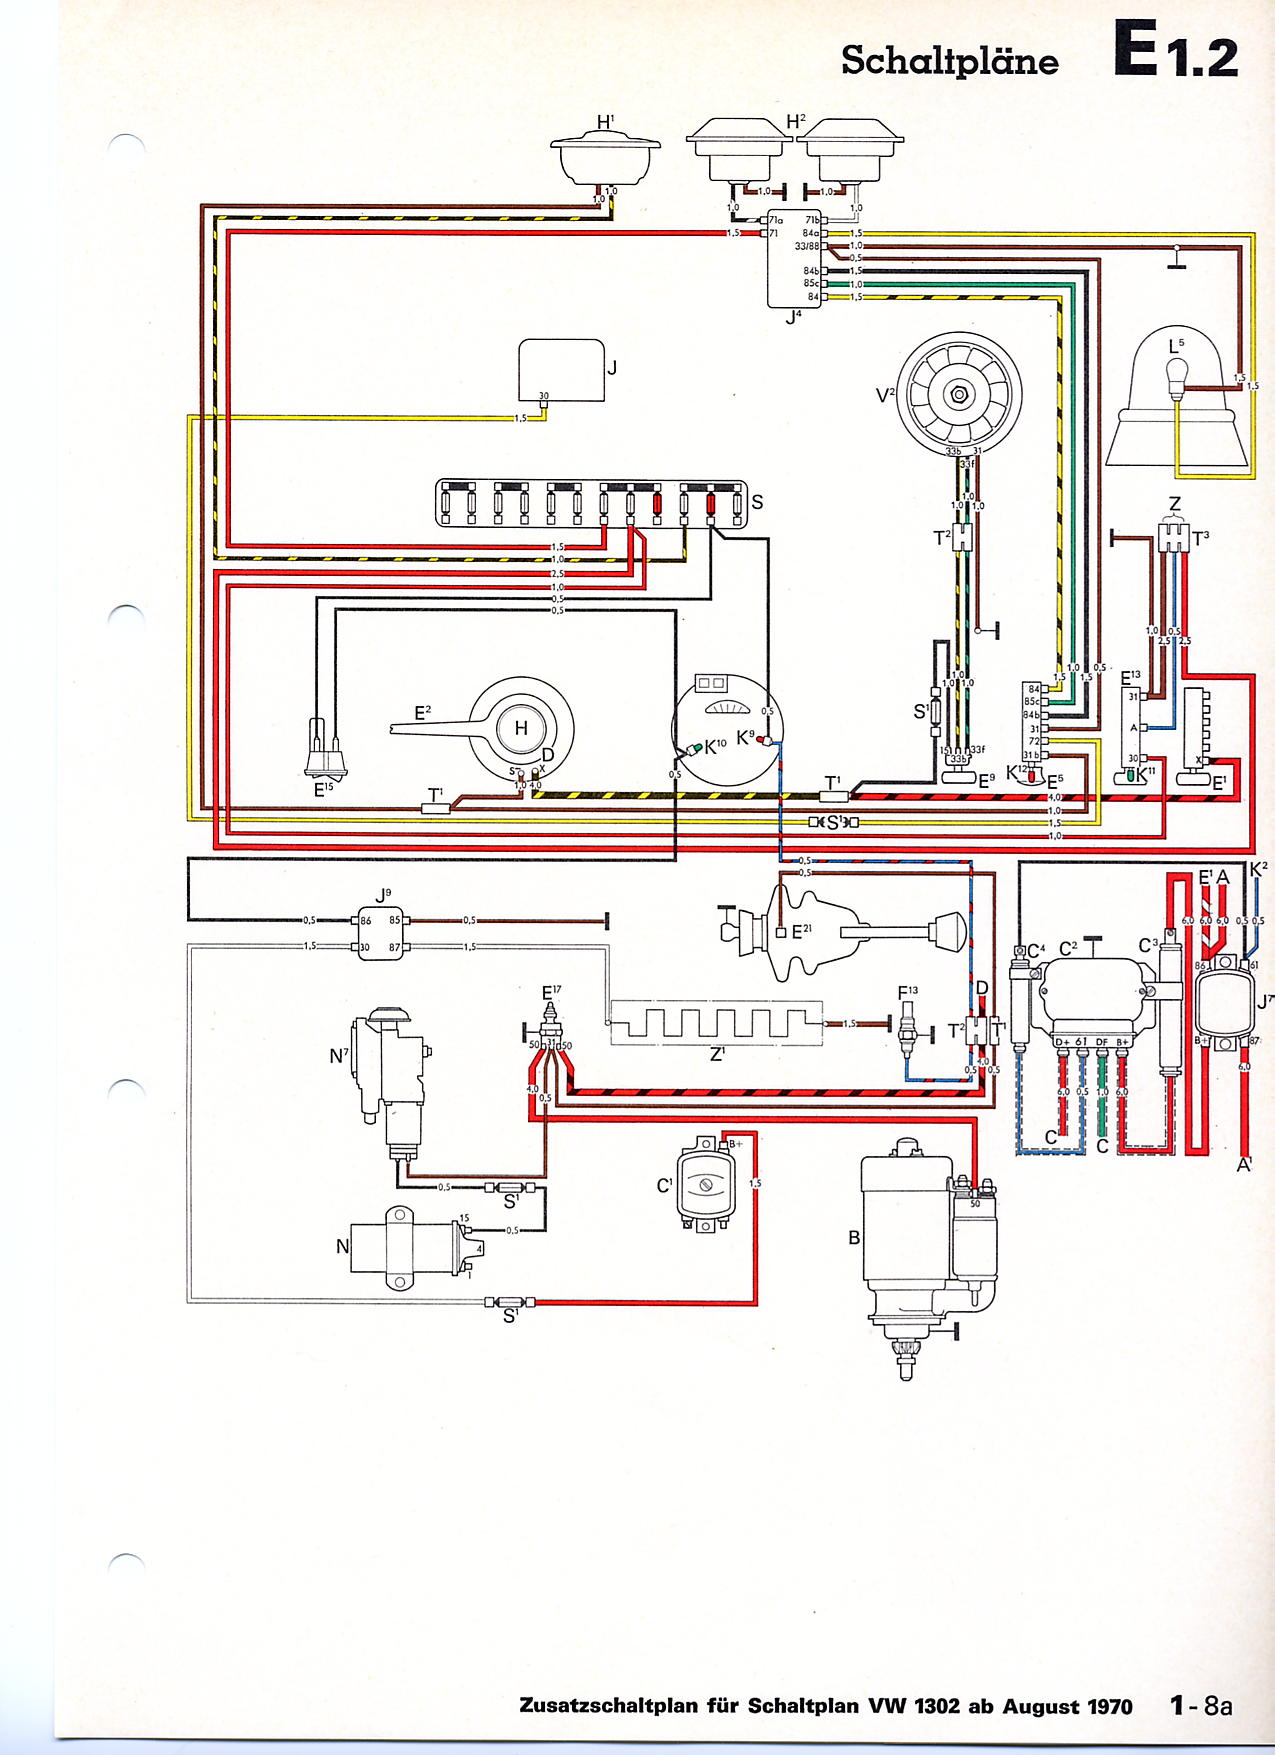 1958 Vw Beetle Wiring Diagram Great Installation Of 1972 Bug Turn Signal Vwtyp1 Com 1970 1965